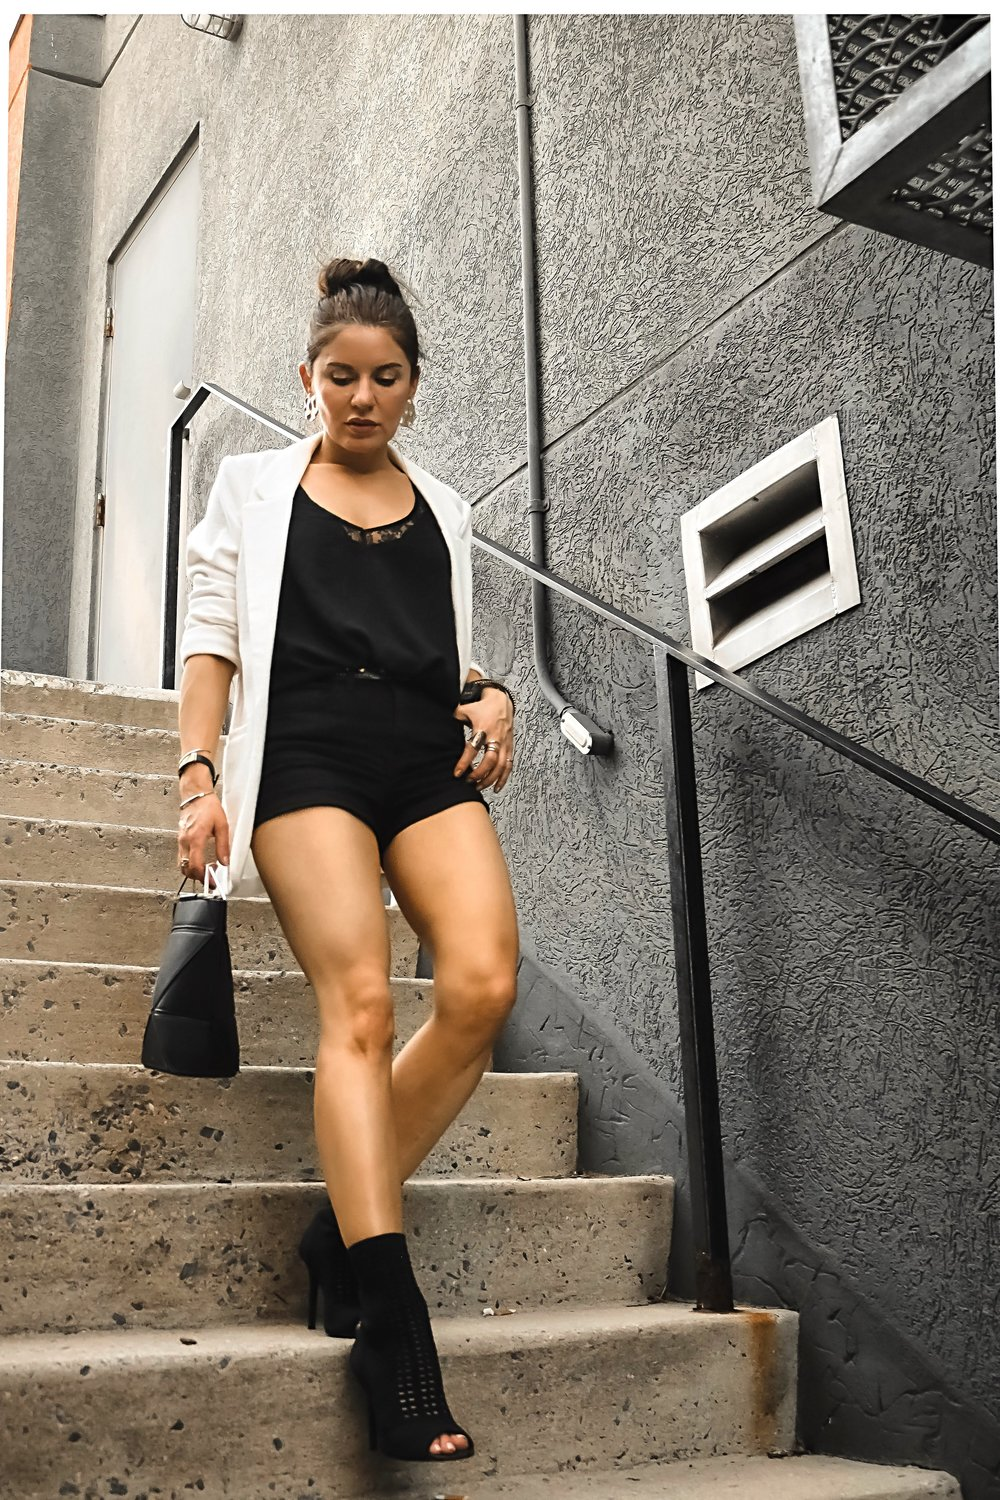 White Blazer Black Shorts Boots Outfit Isabel Alexander Streetstyle